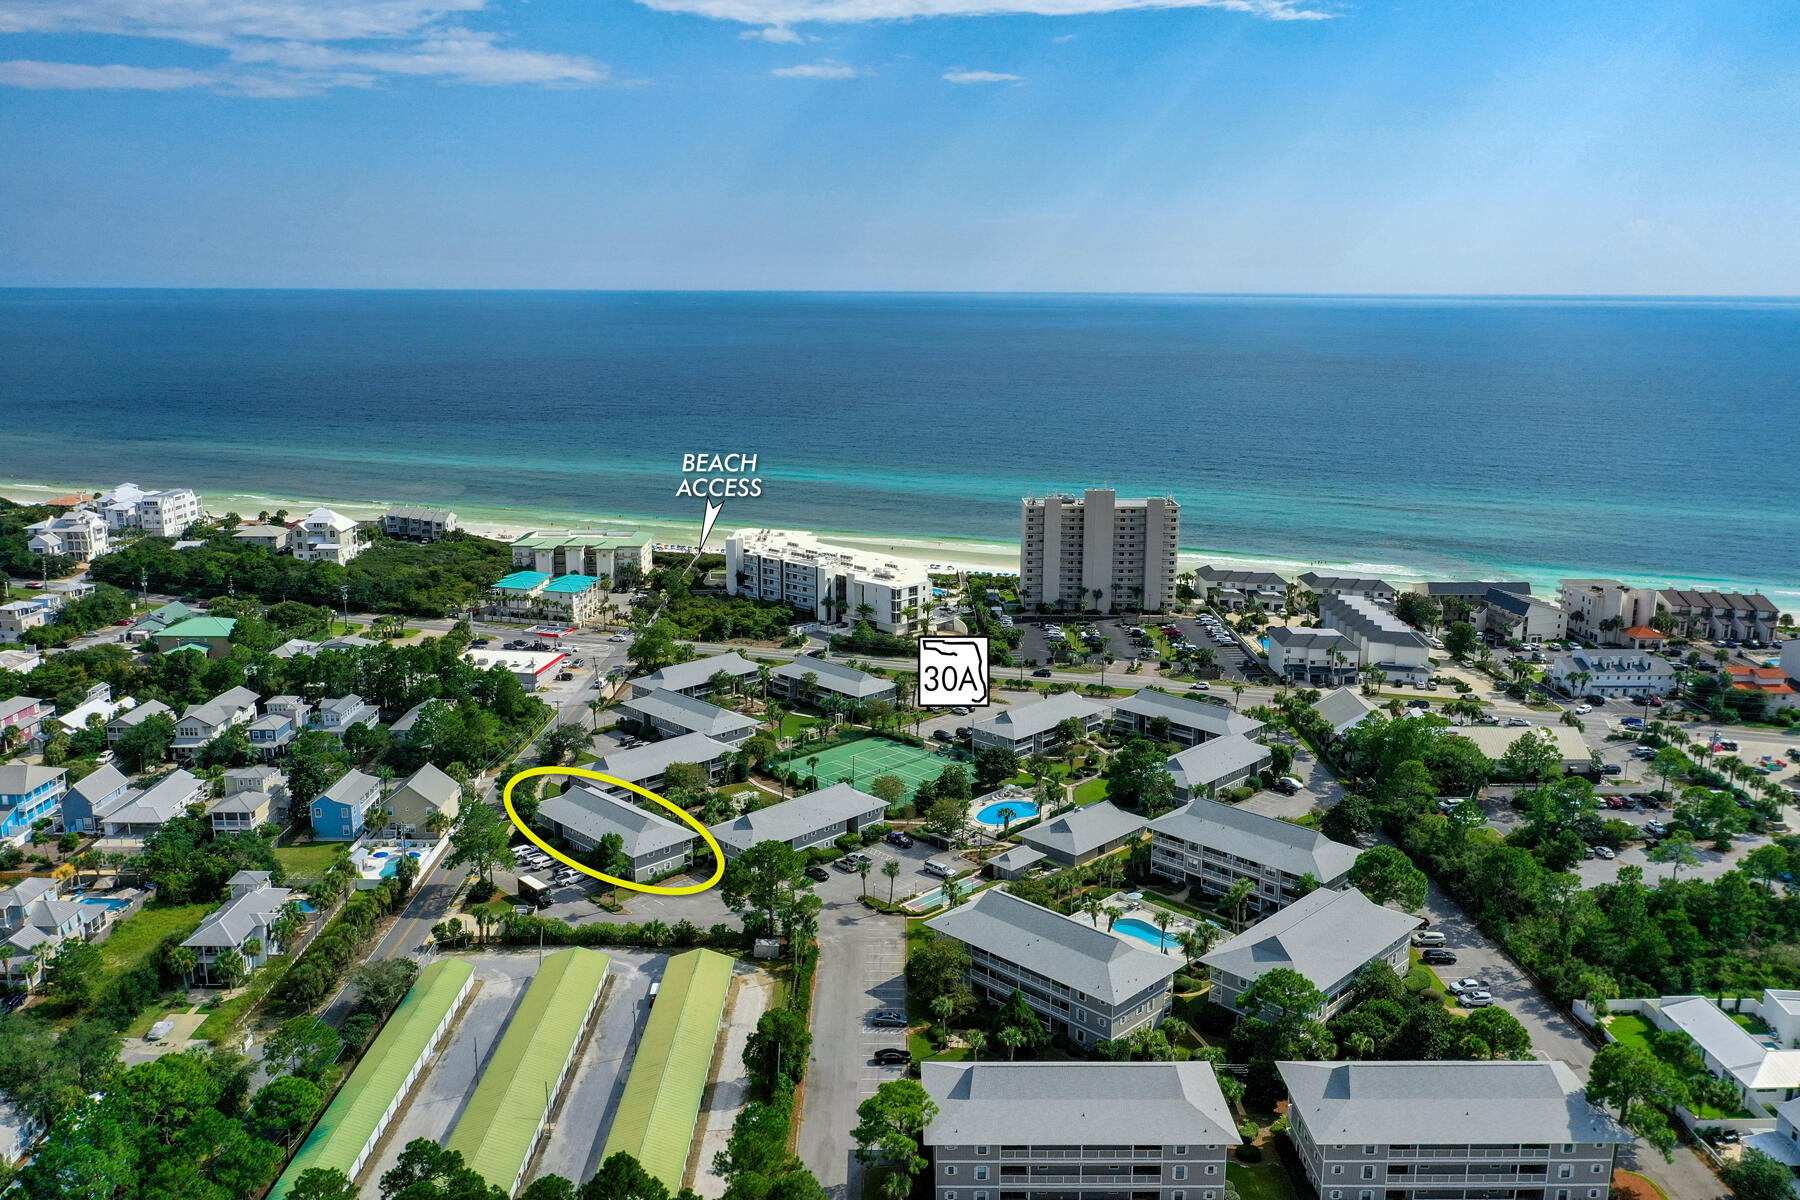 This second-floor condominium is in the Beachwood Villas community of Seagrove Beach, Florida. Enjoy the centralized location and proximity to all venues, restaurants, shopping, and bike paths of Scenic 30A of South Walton County.This community offers a host of amenities including tennis courts, pools, and the beach is within walking distance and across the street.A great opportunity to own a second home or a vacation rental!